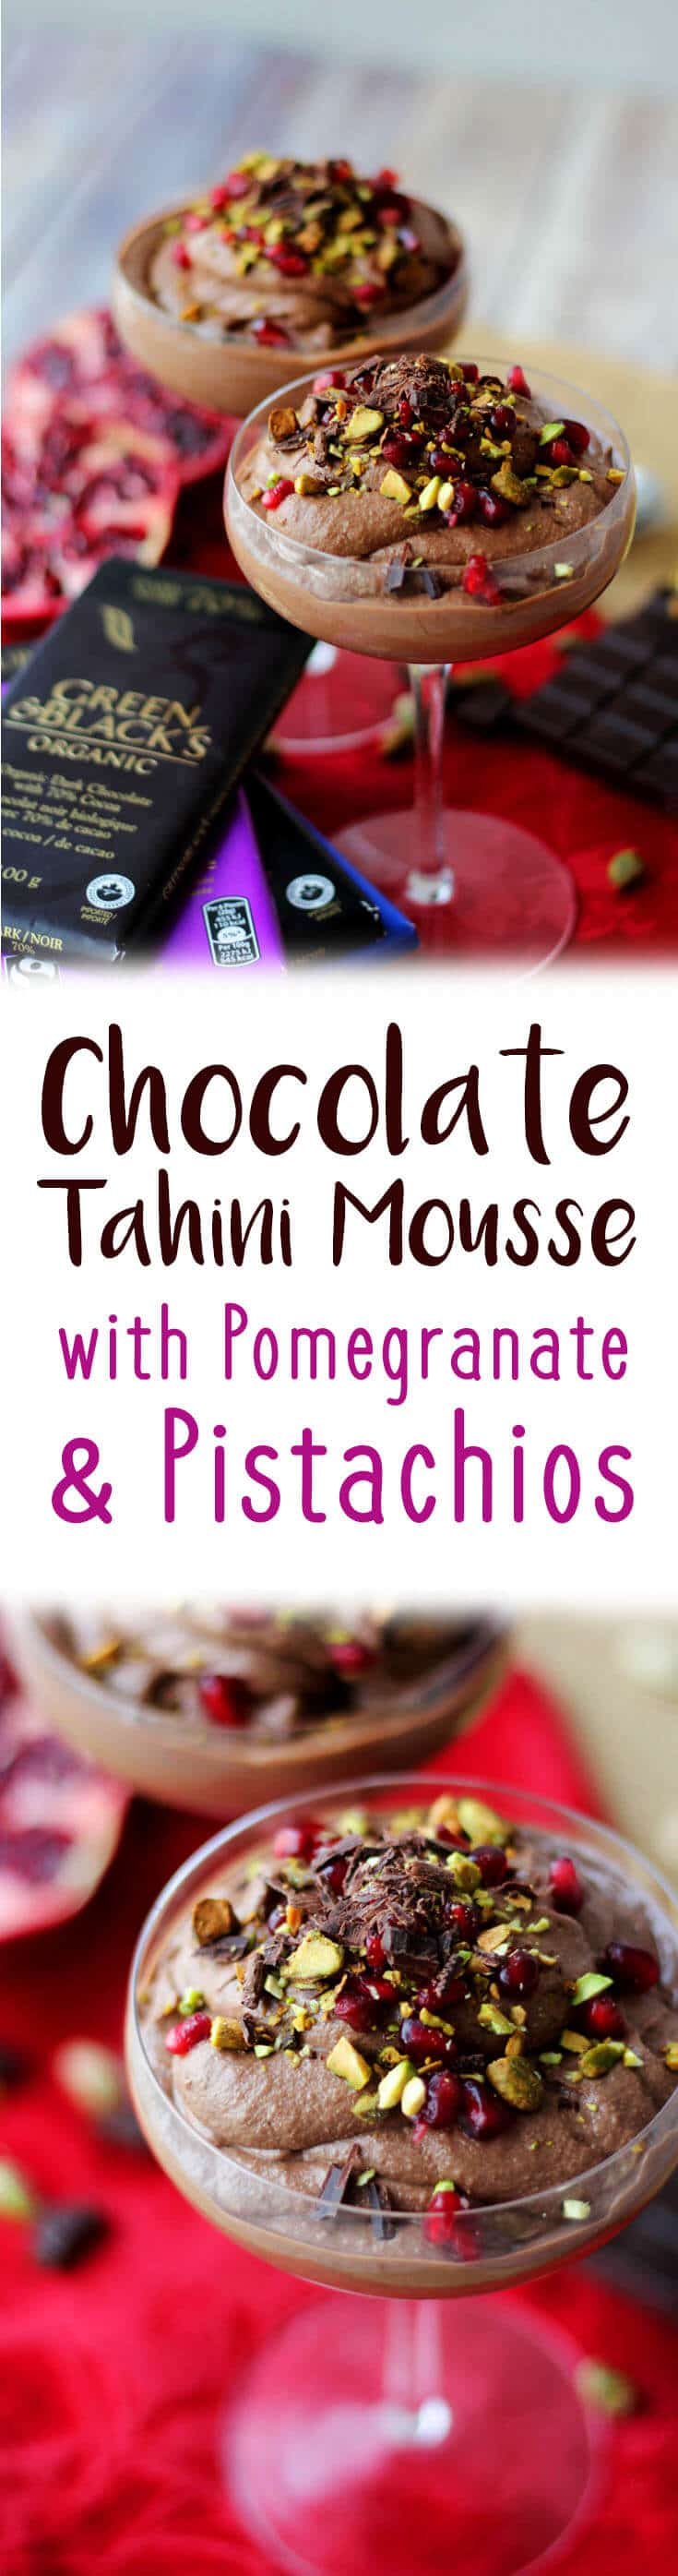 This chocolate tahini mousse with pomegranate and pistachios is a perfect Valentine's Day dessert recipe filled with good-for-you ingredients!